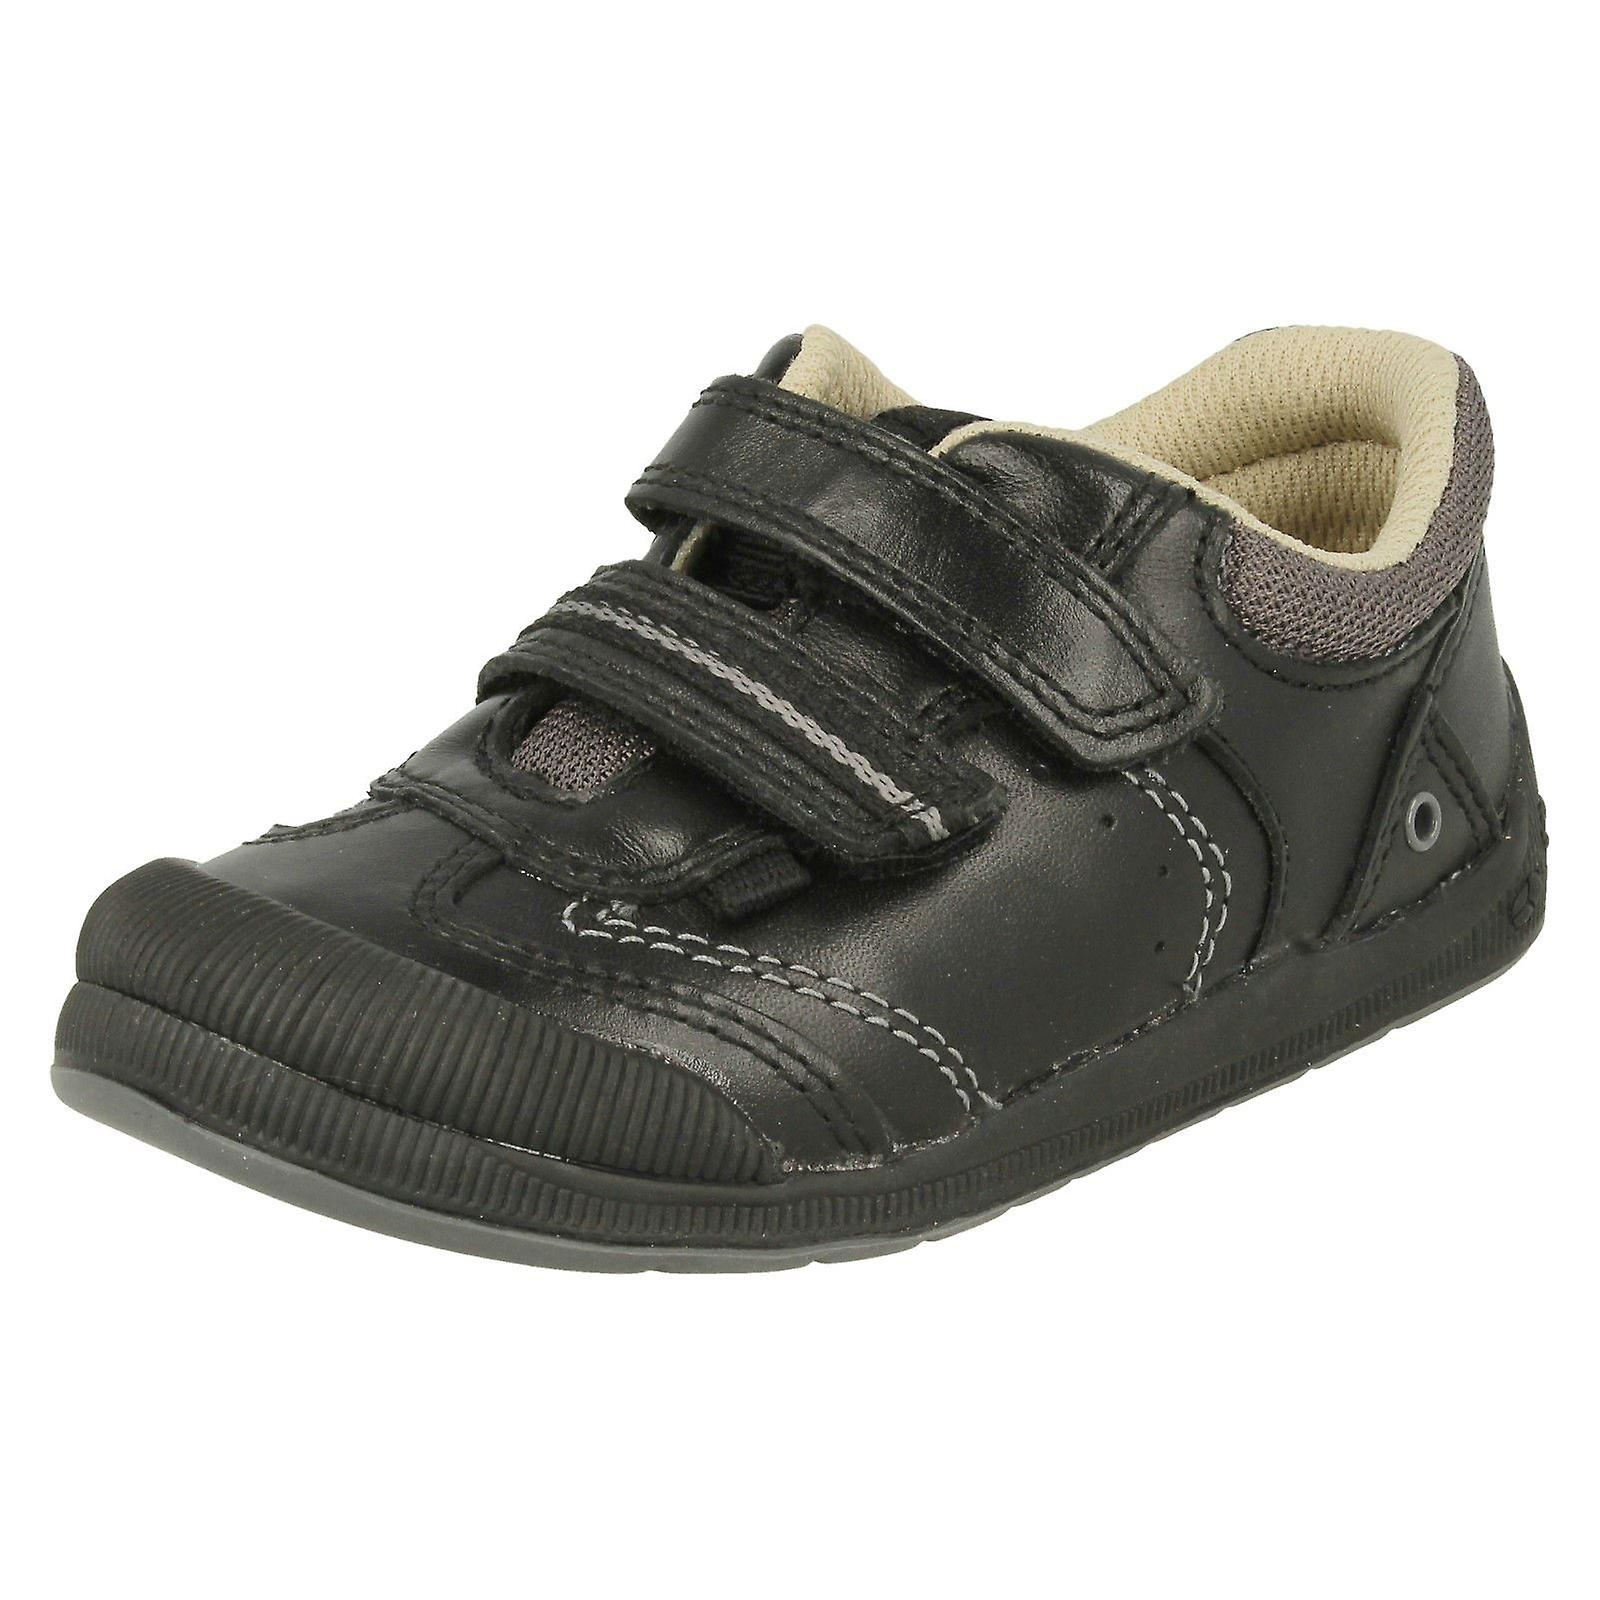 Boys Startrite Tough Bug Fst Casual chaussures